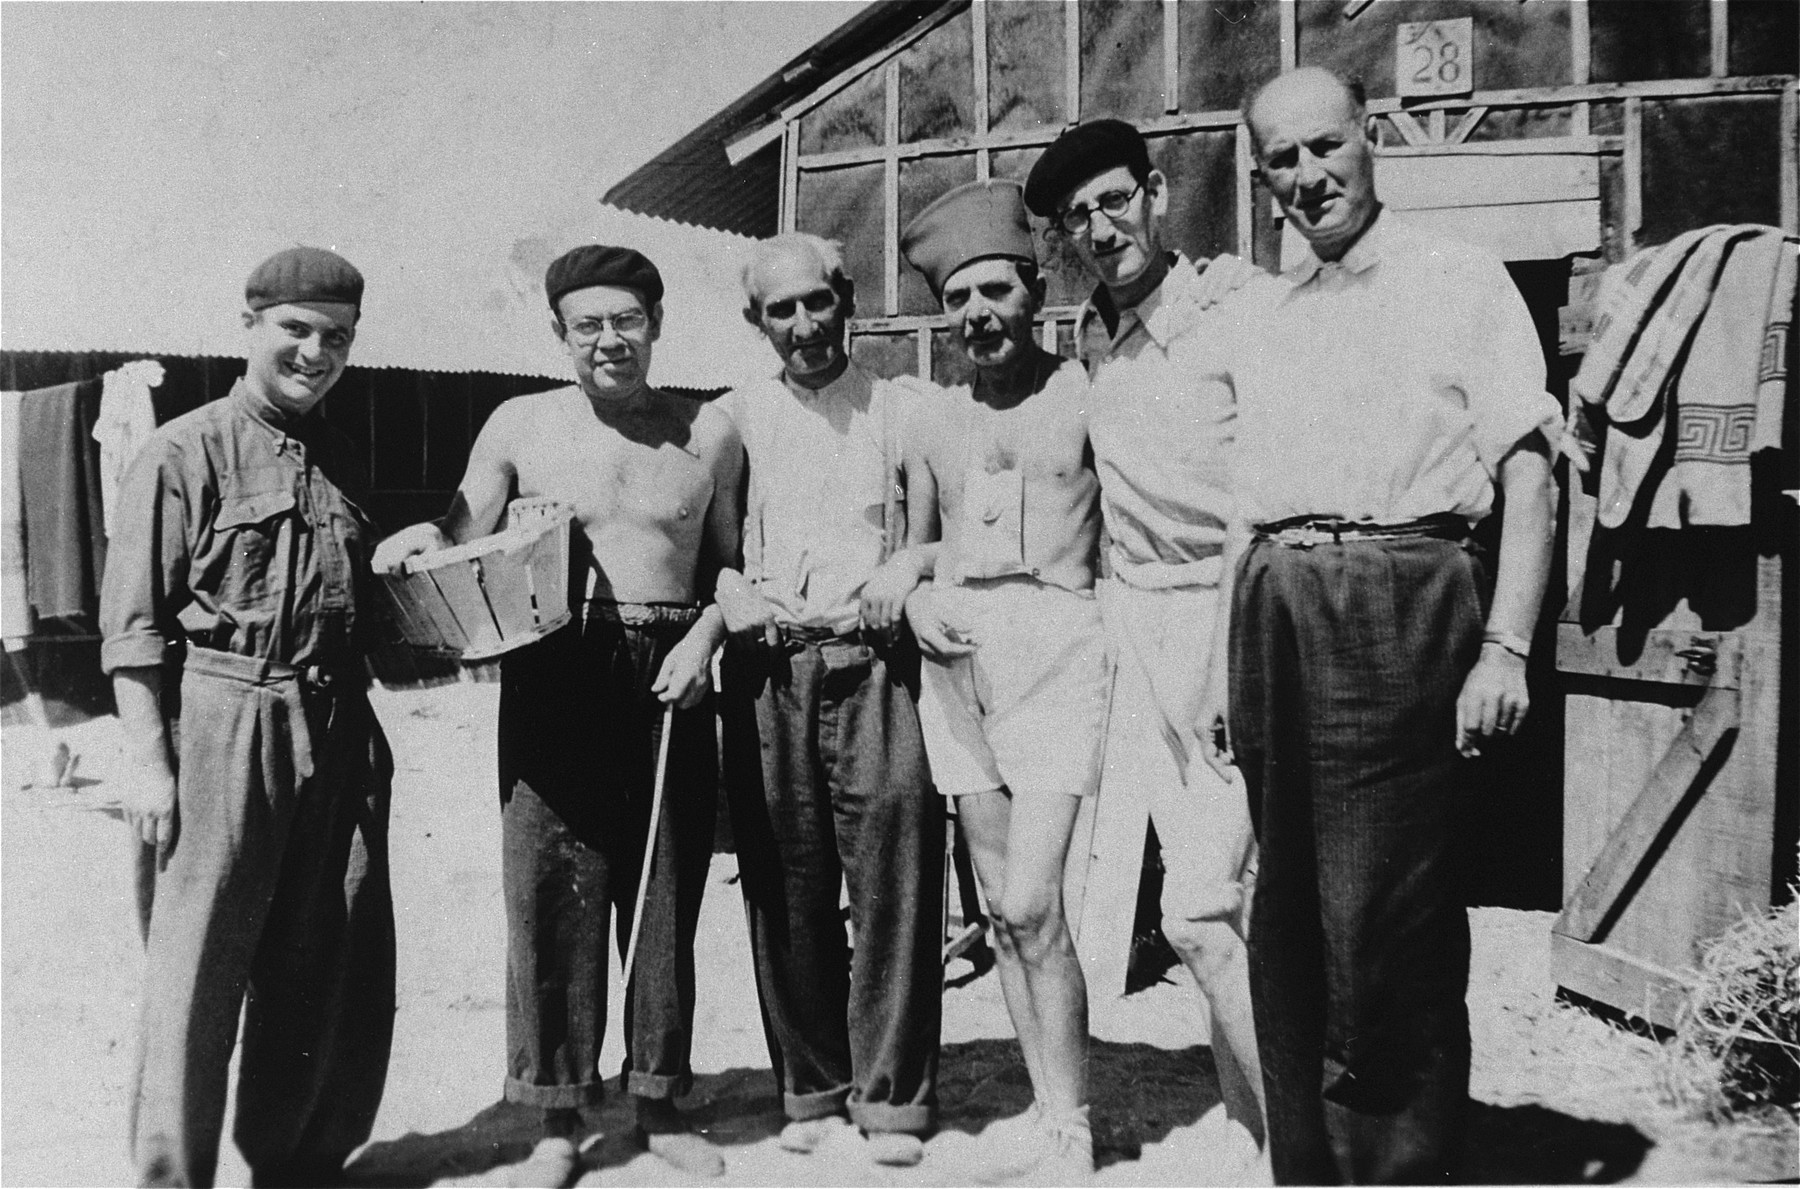 Moritz Schoenberger (third from right) with other Jewish inmates in Saint Cyprien concentration camp.  Also pictured is Alexander Bornstein (far right).